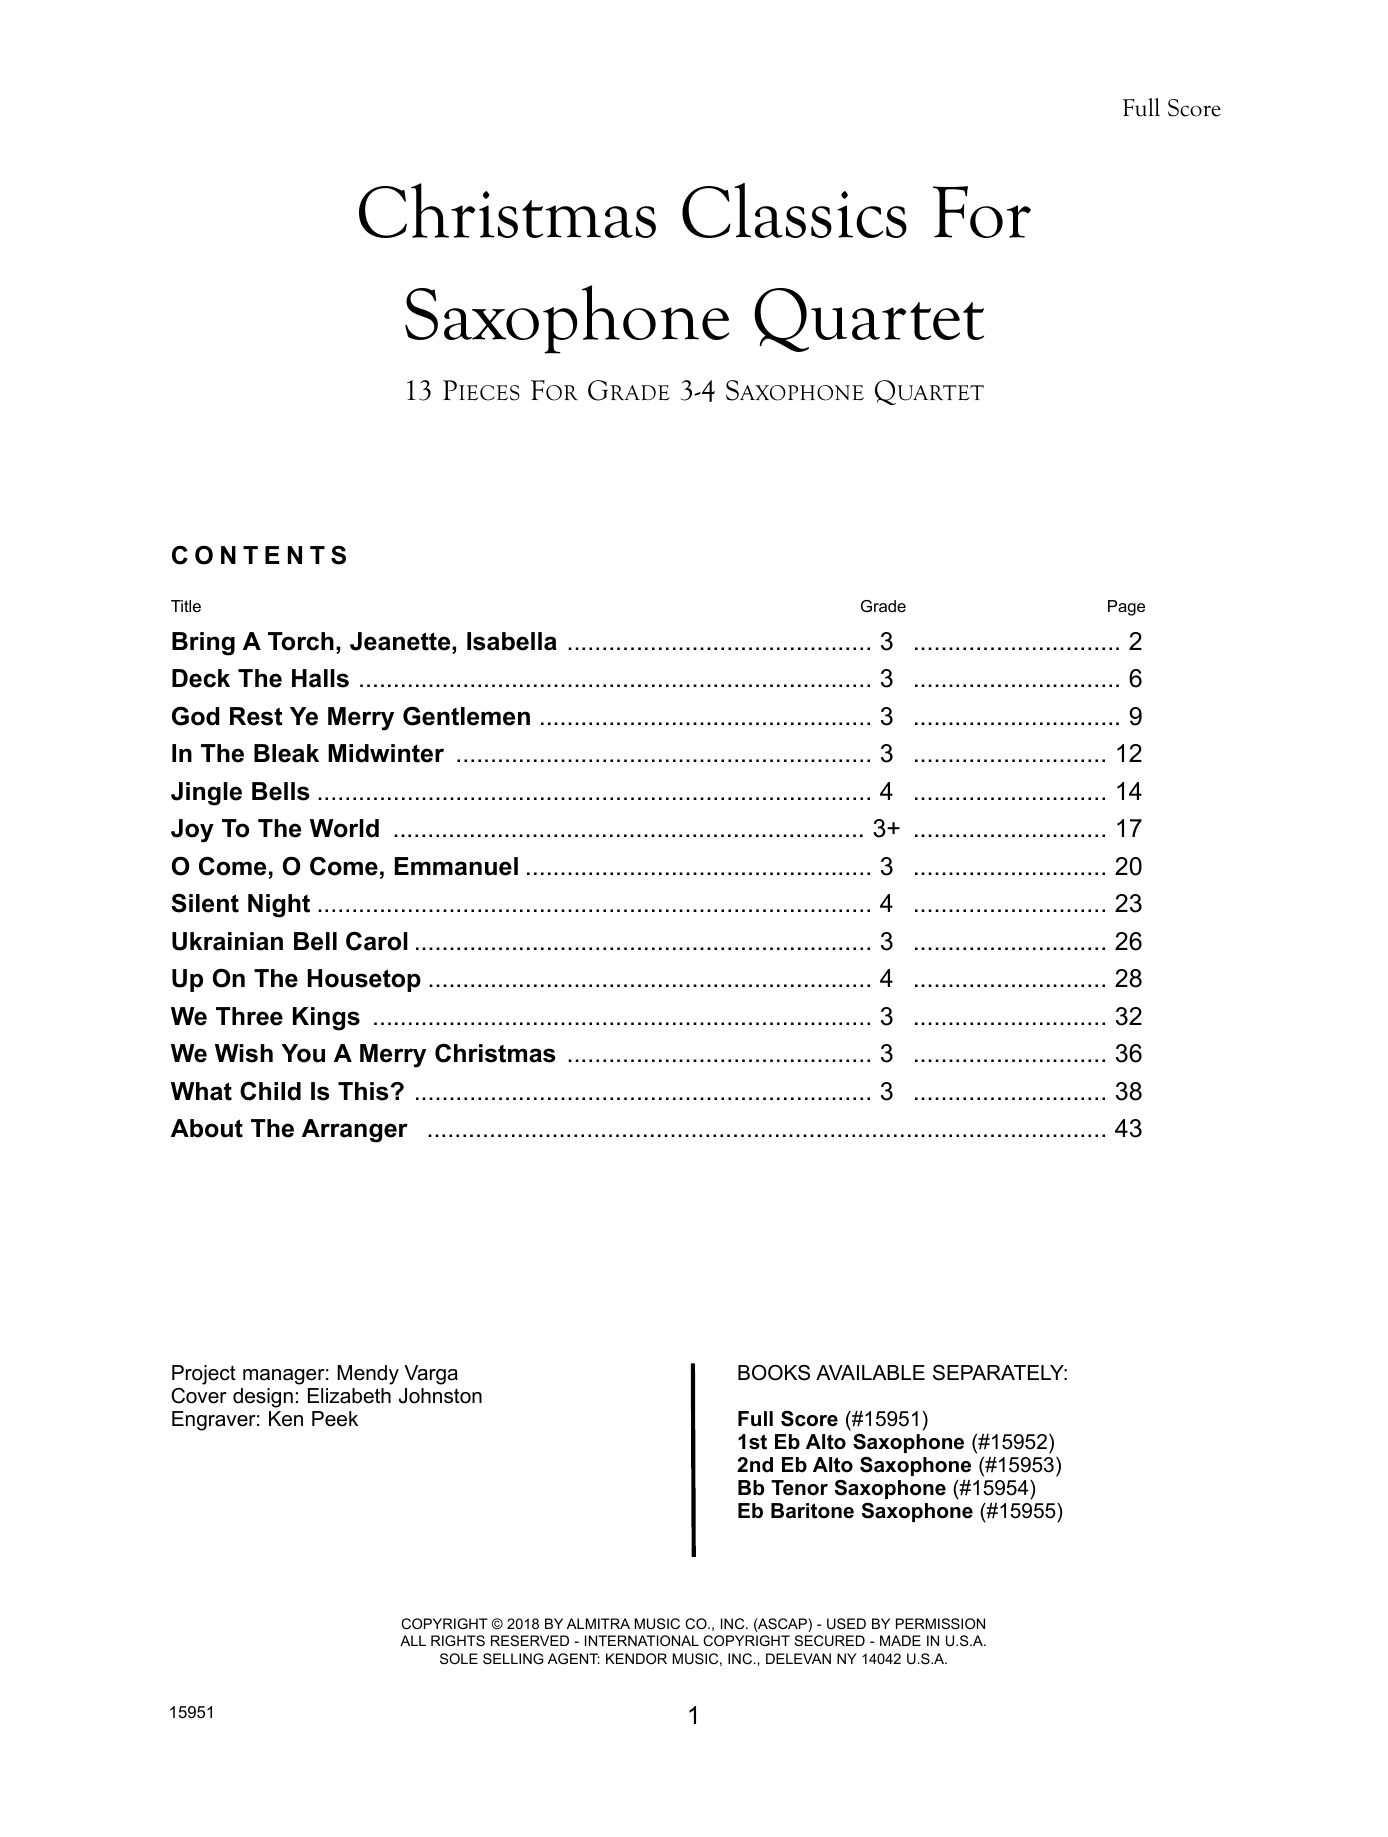 Christmas Classics For Saxophone Quartet - Full Score Sheet Music